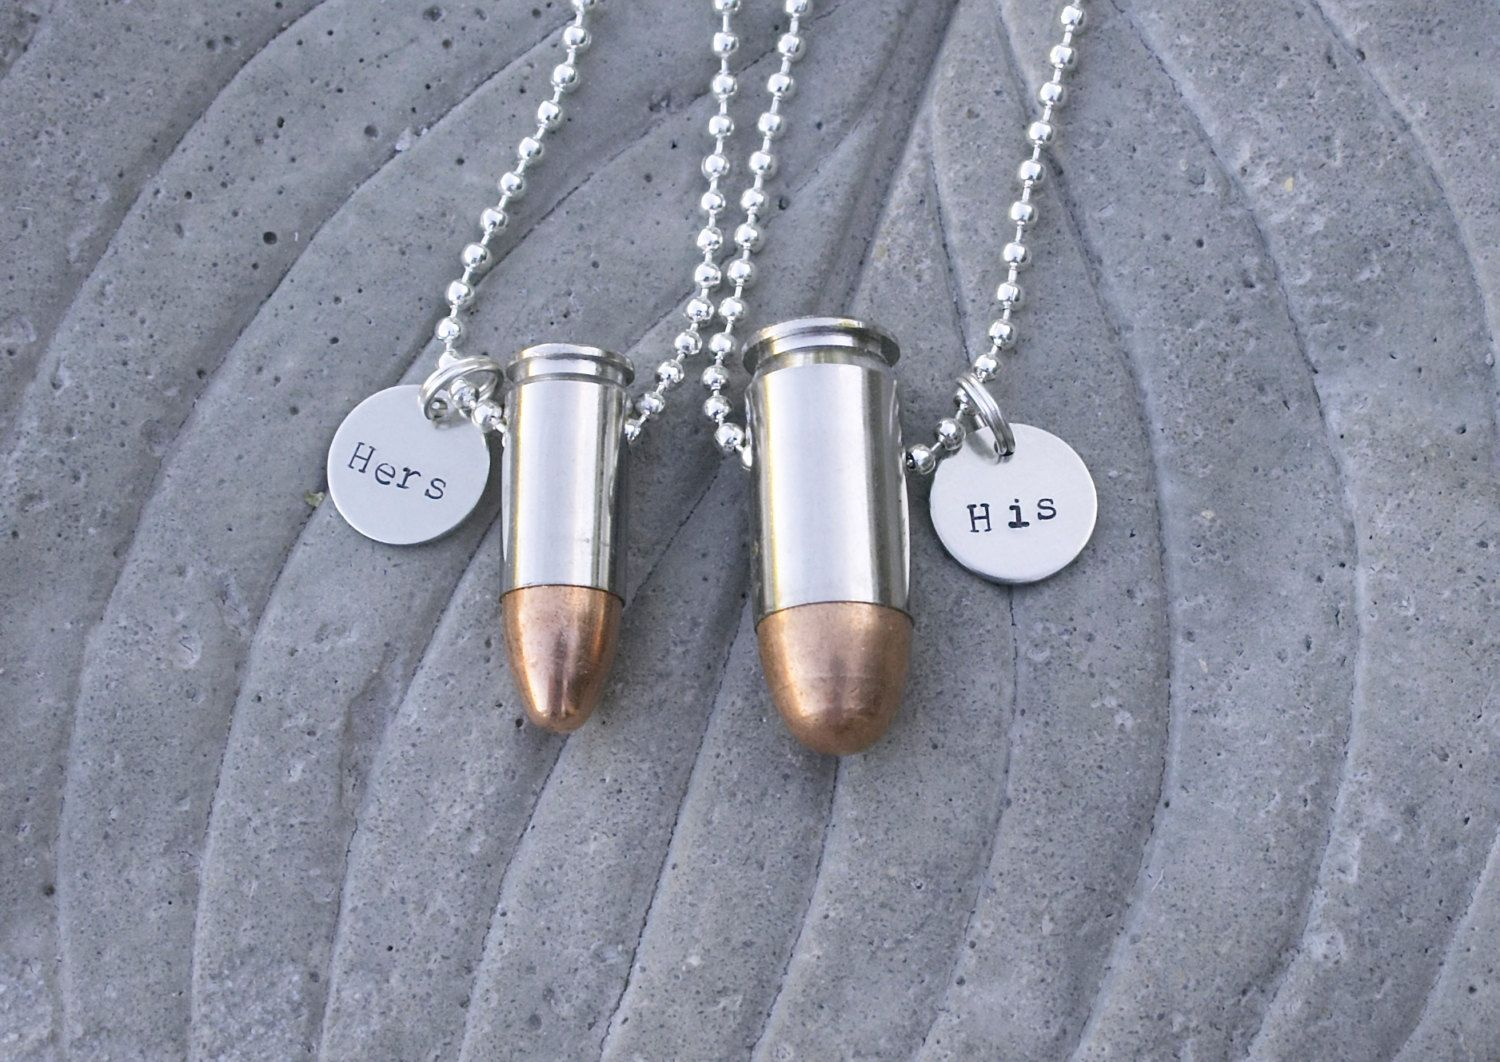 His and Hers Bullet Jewelry Necklaces Customized by BulletsAndWire